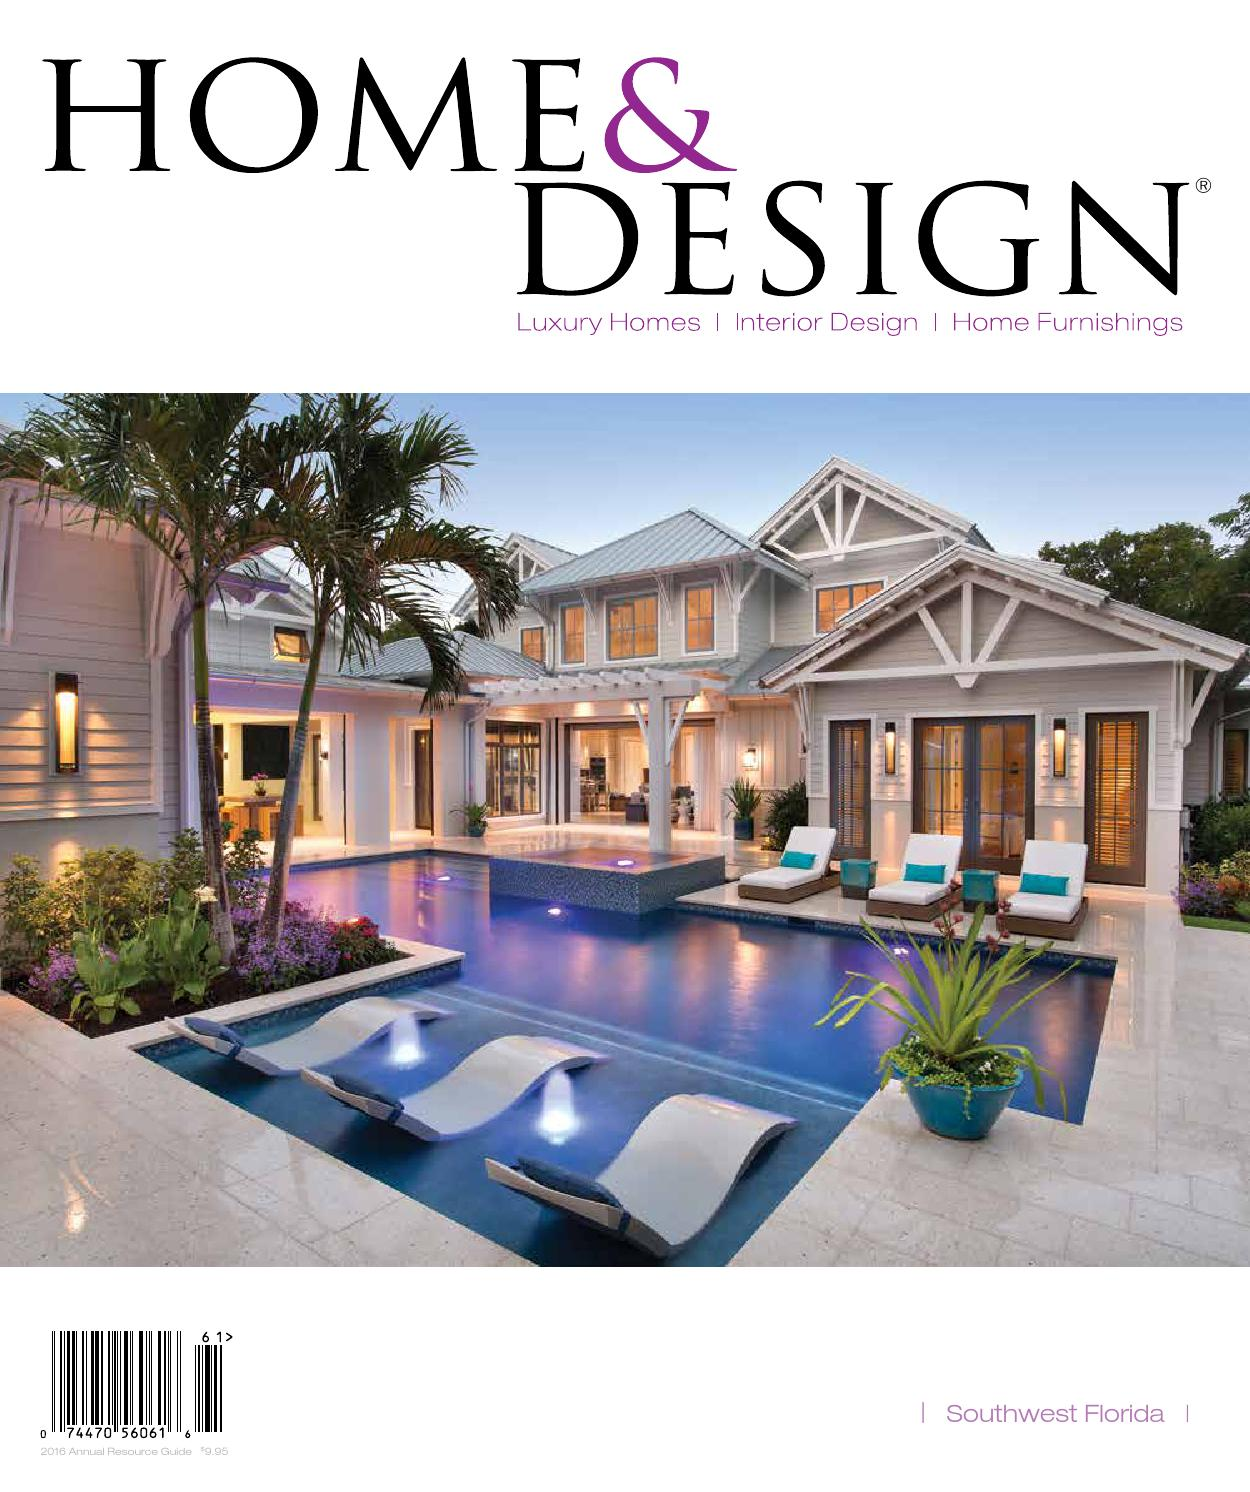 home design magazine annual resource guide 2016 southwest florida edition by anthony spano issuu